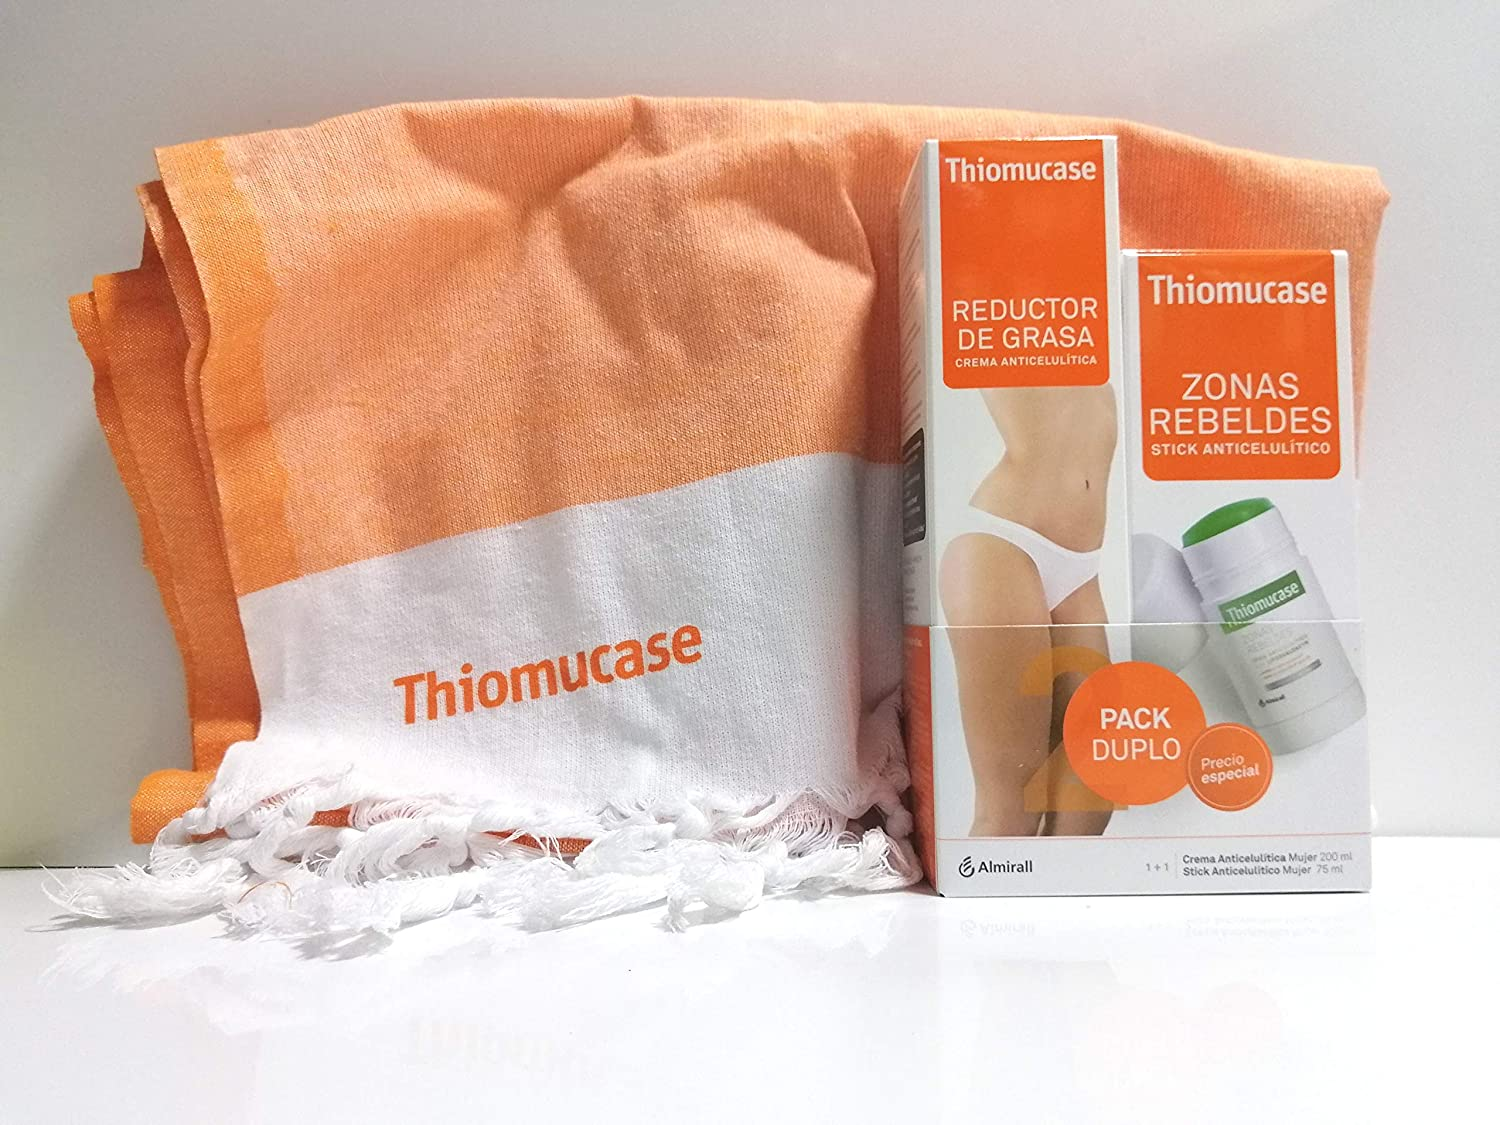 THIOMUCASE PACK STICK ROLL-ON 75ML + CREMA REDUCTORA 200 ML + PAREO/TOALLA